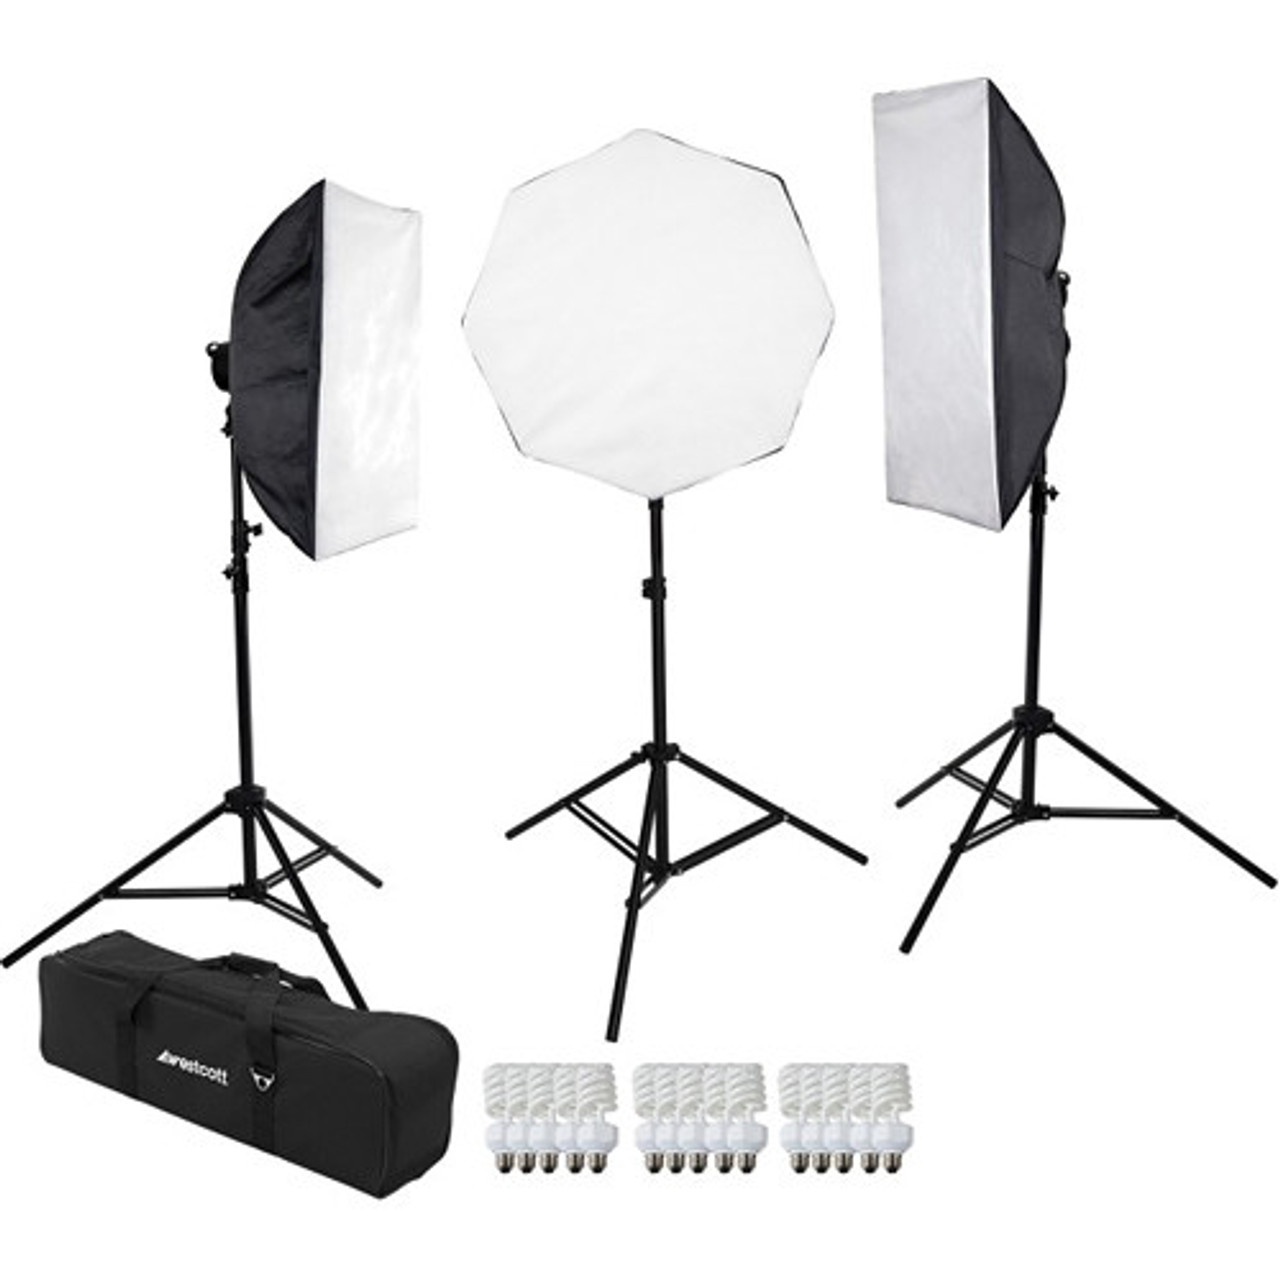 Westcott D5 Daylight 2-Light Softbox Kit